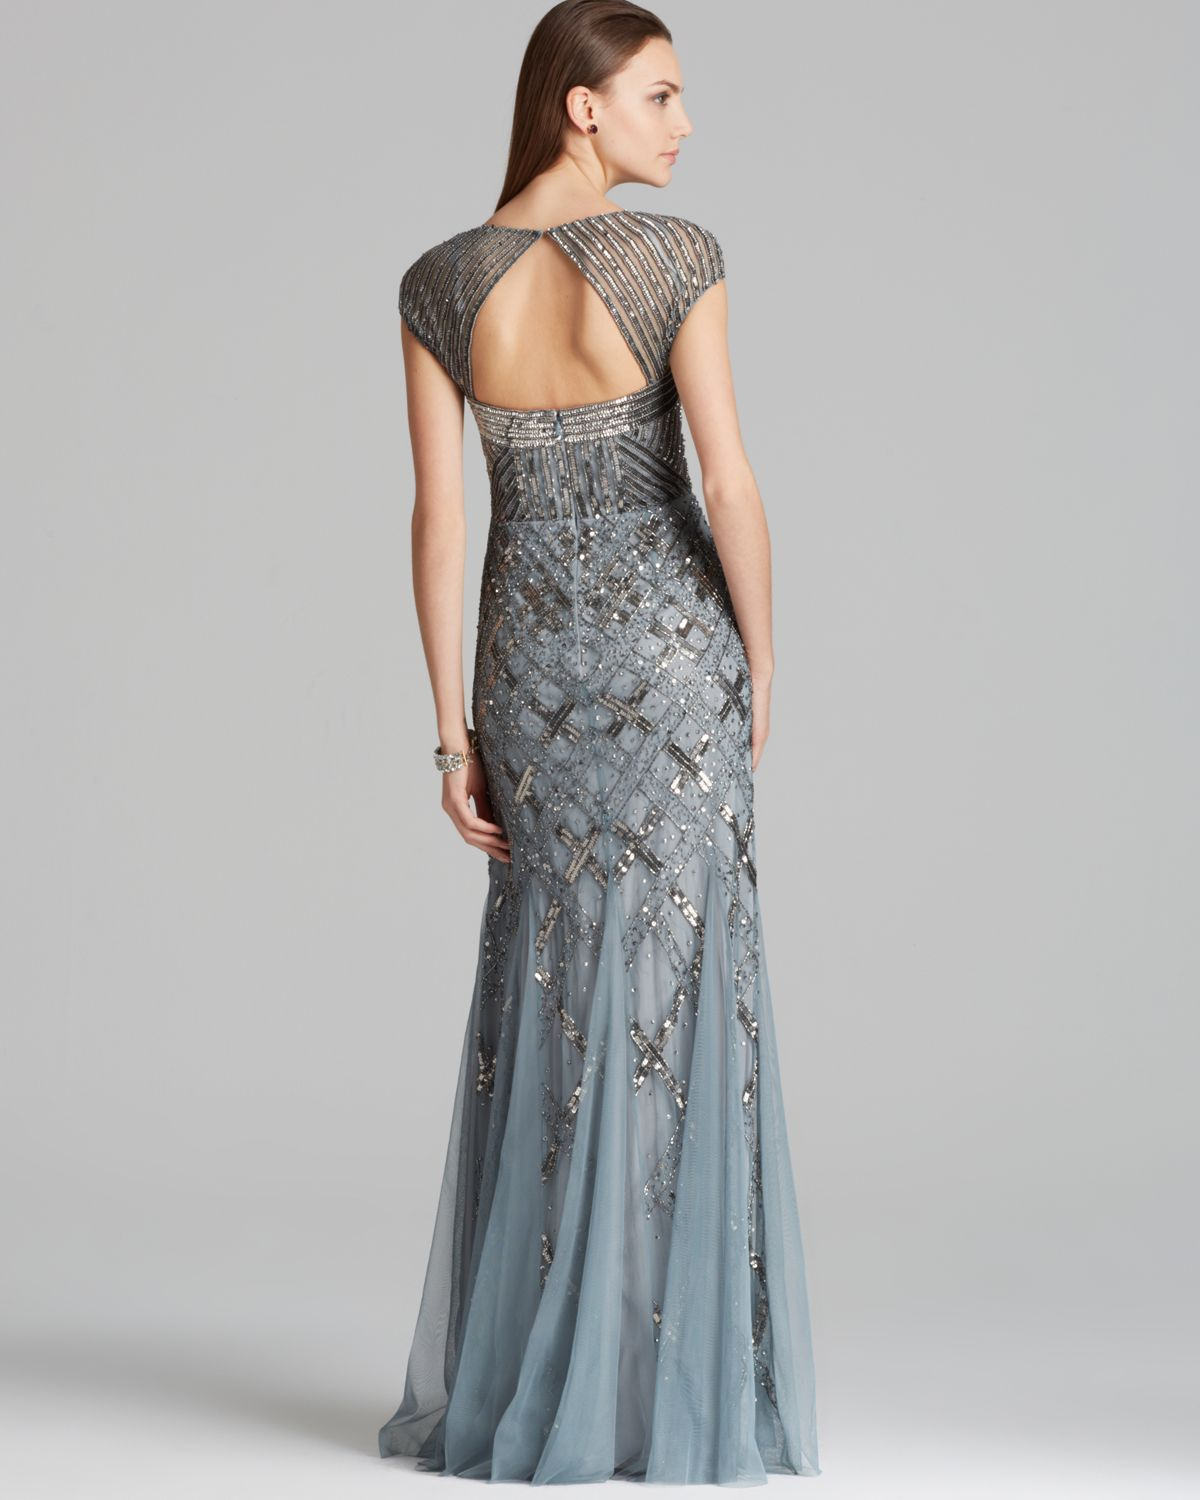 Adrianna papell Gown Cap Sleeve Beaded in Blue